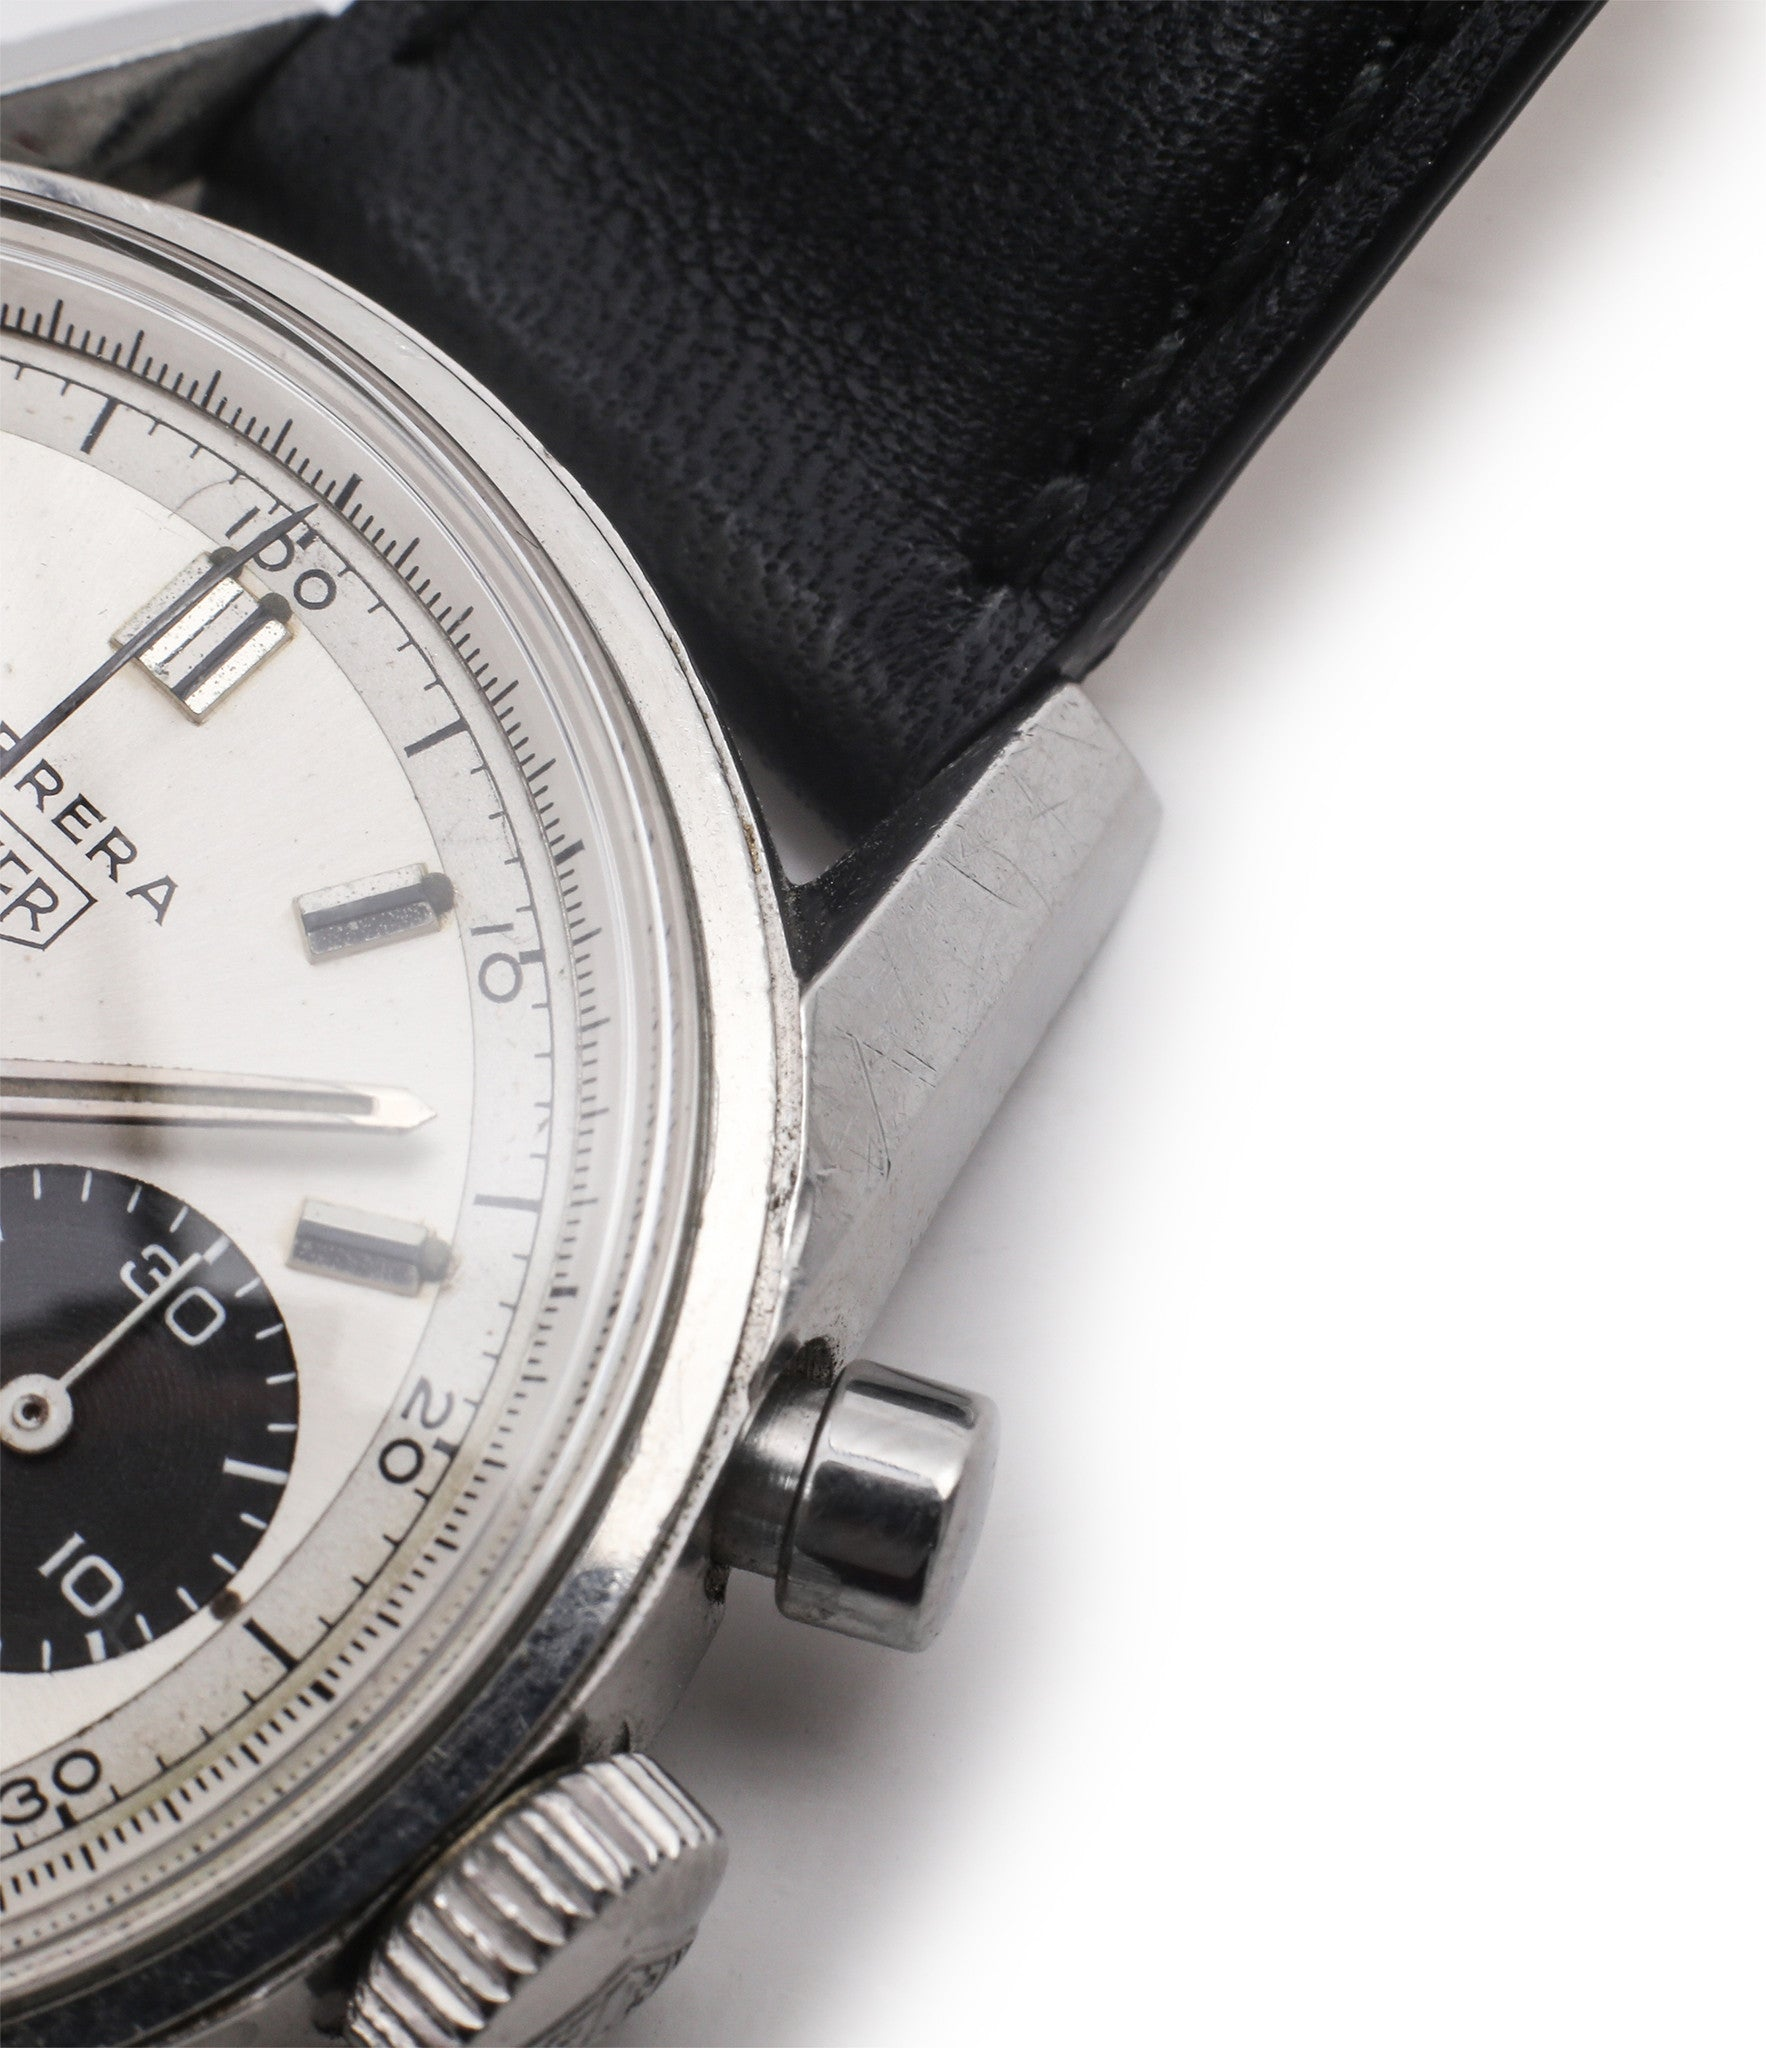 steel vintage chronograph Heuer Carrera 7753SND vintage sports watch panda dial online at A Collected Man for sale